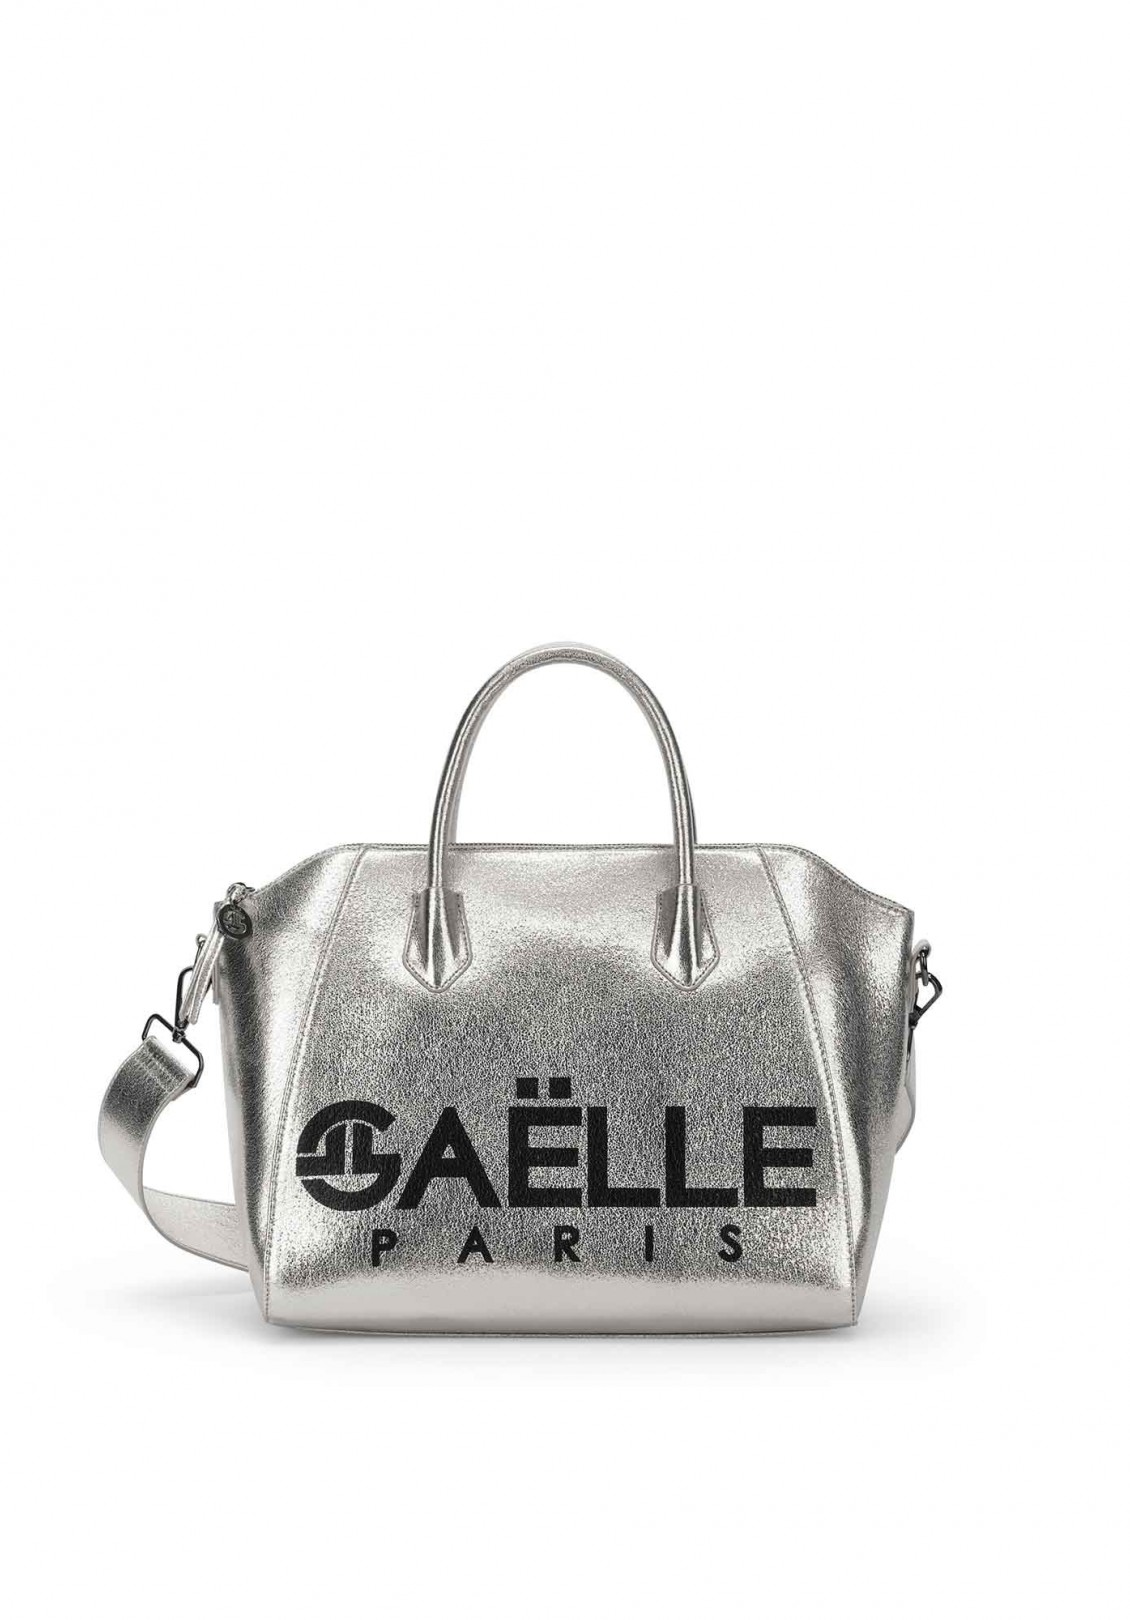 HAND BAG - GBDA1865 - GAELLE PARIS